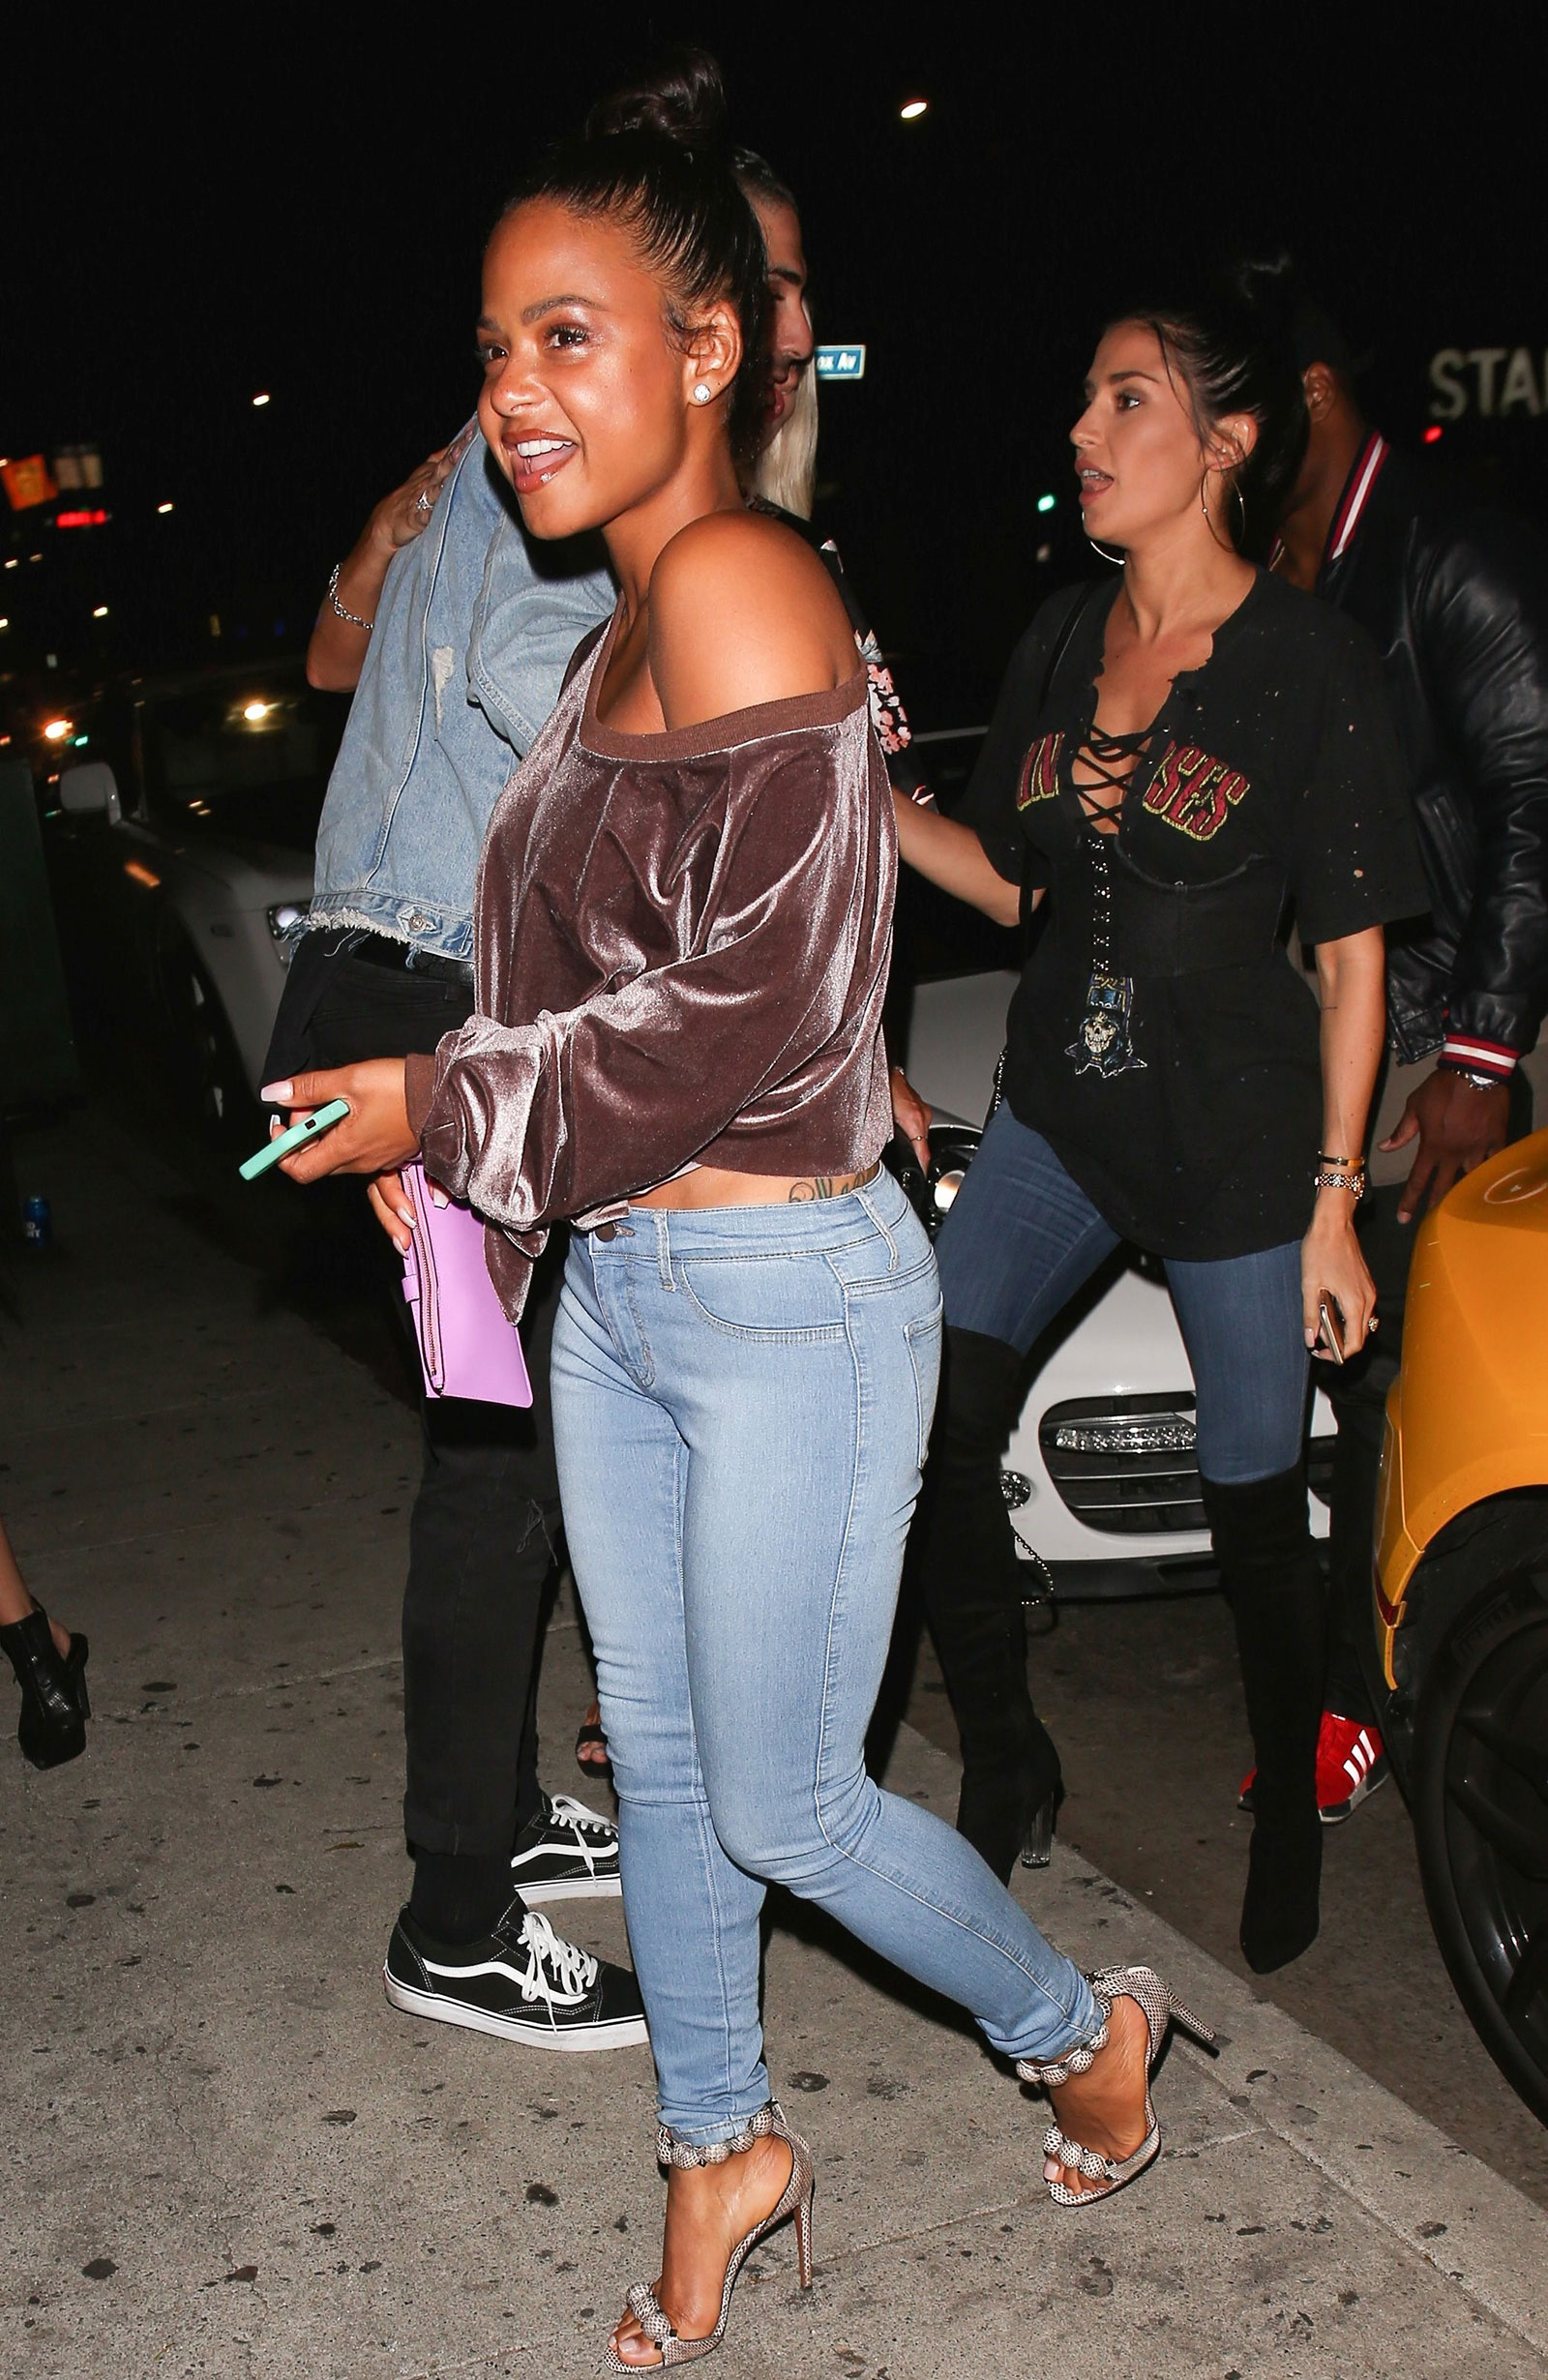 c8a66ccc62c79b Christina Milian s velvet off-the-shoulder sweatshirt and skinny jeans look  for less